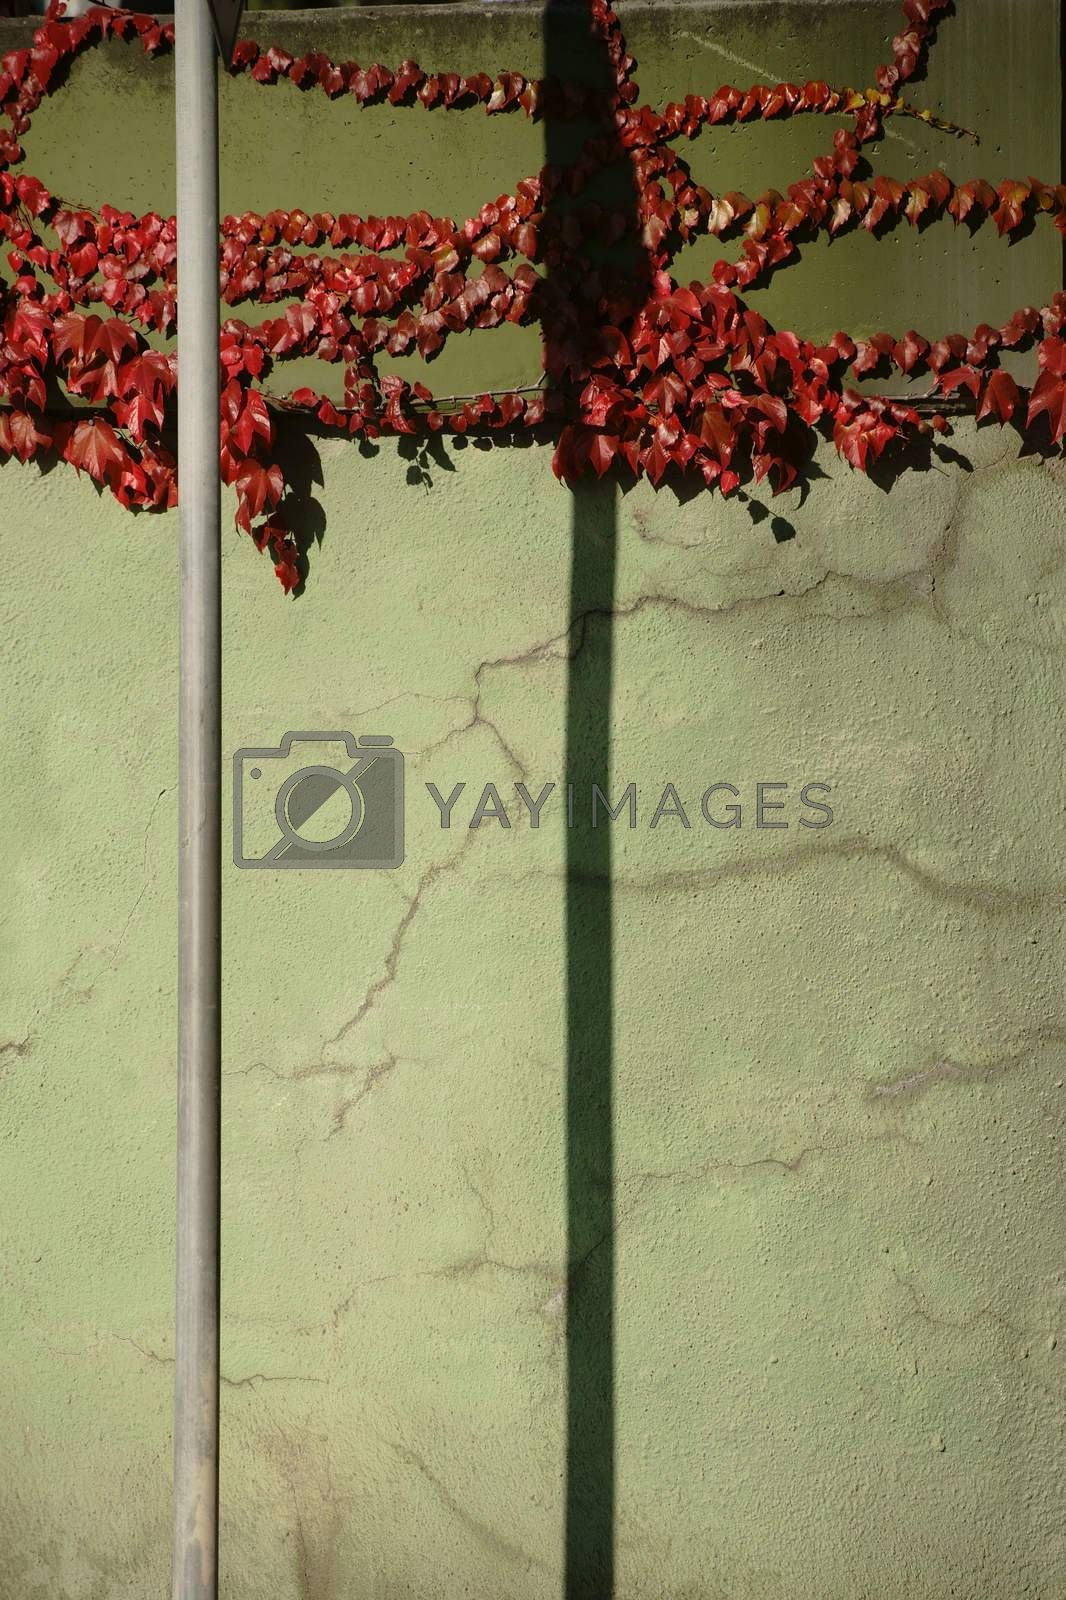 The tendrils and branches of a vine plant on a cracked wall with red and green leaves in the fall and a traffic sign and its abstract shadow.